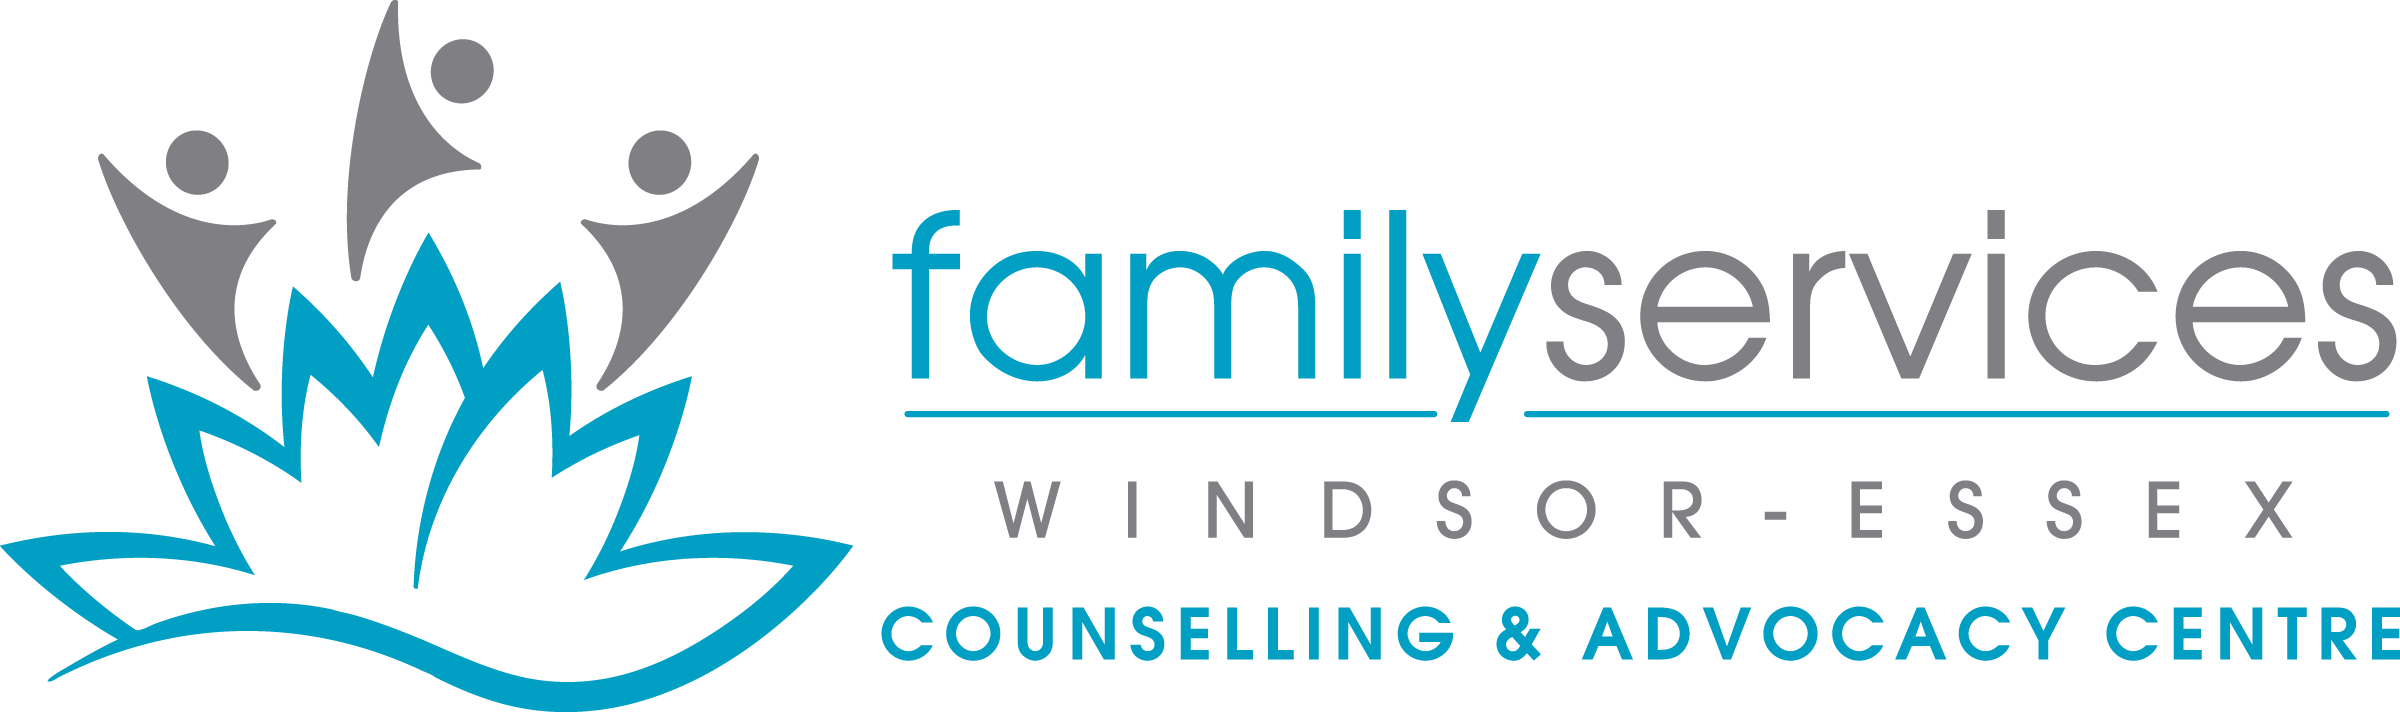 Family Services Windsor-Essex - Counselling & Advocacy Centre